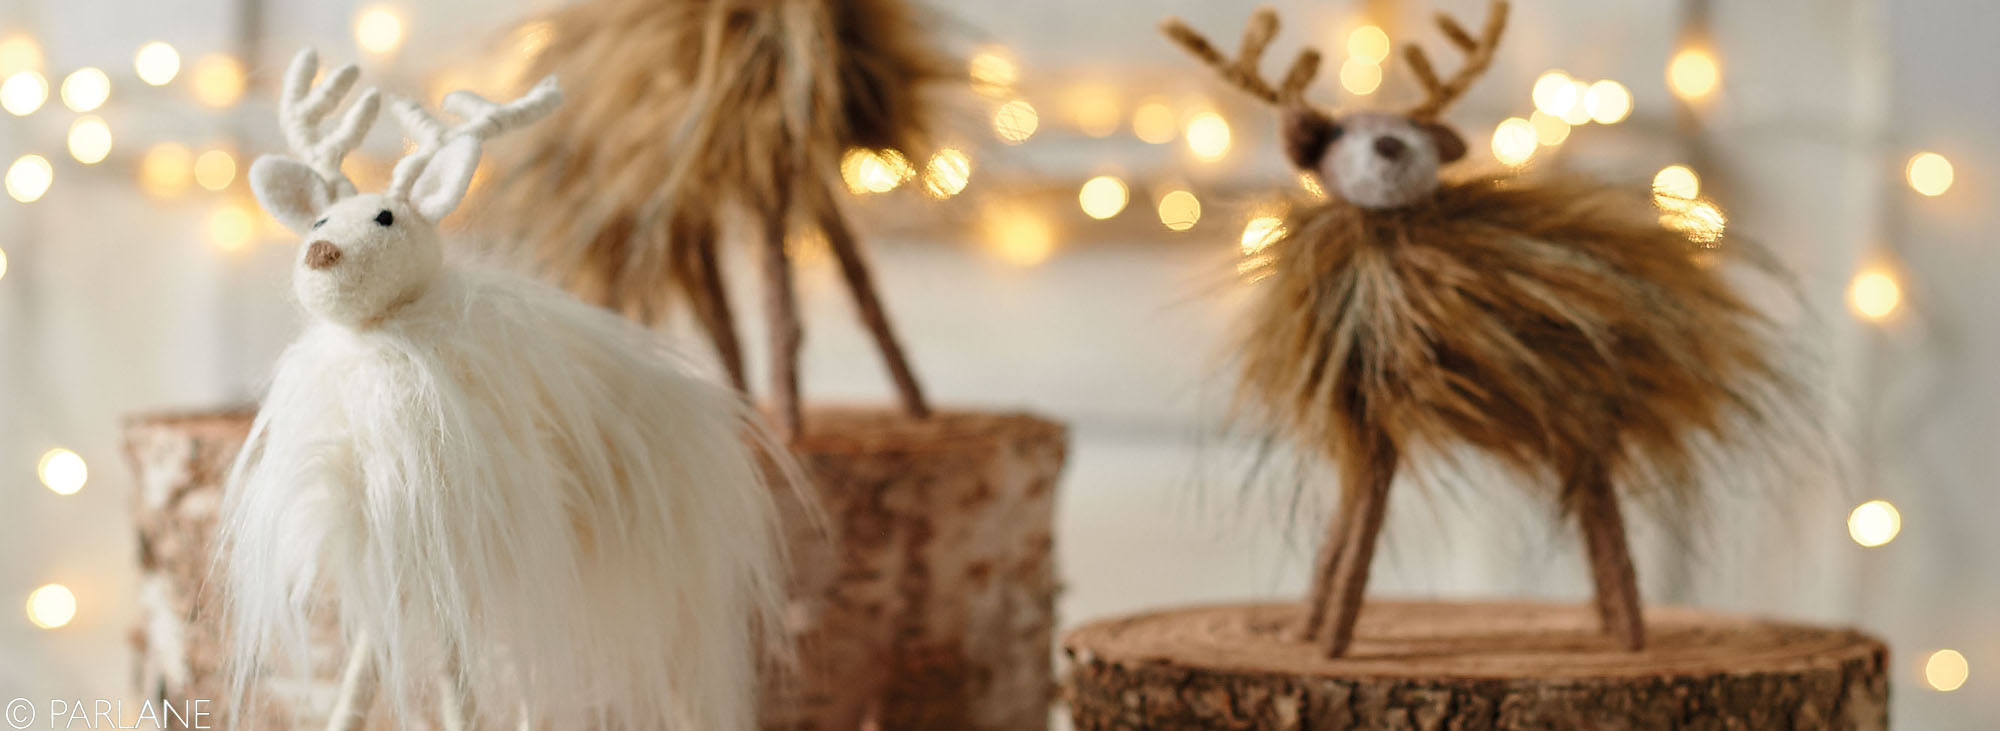 5 Christmas Decoration Styles We Love